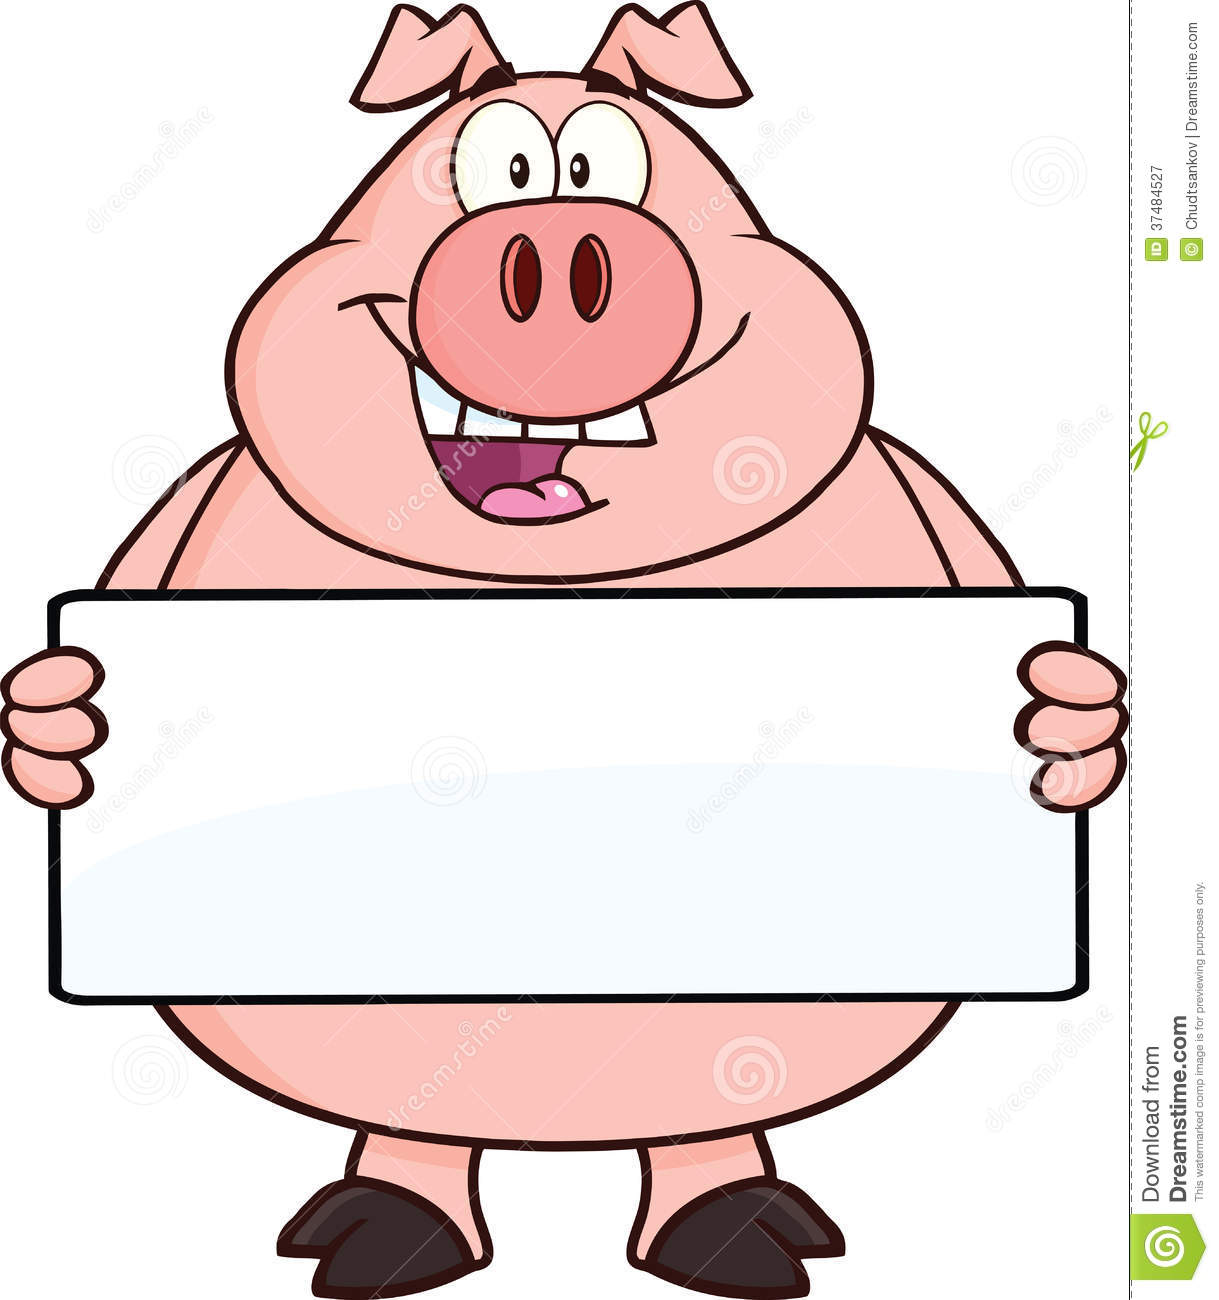 Male pig cartoon characters - photo#28